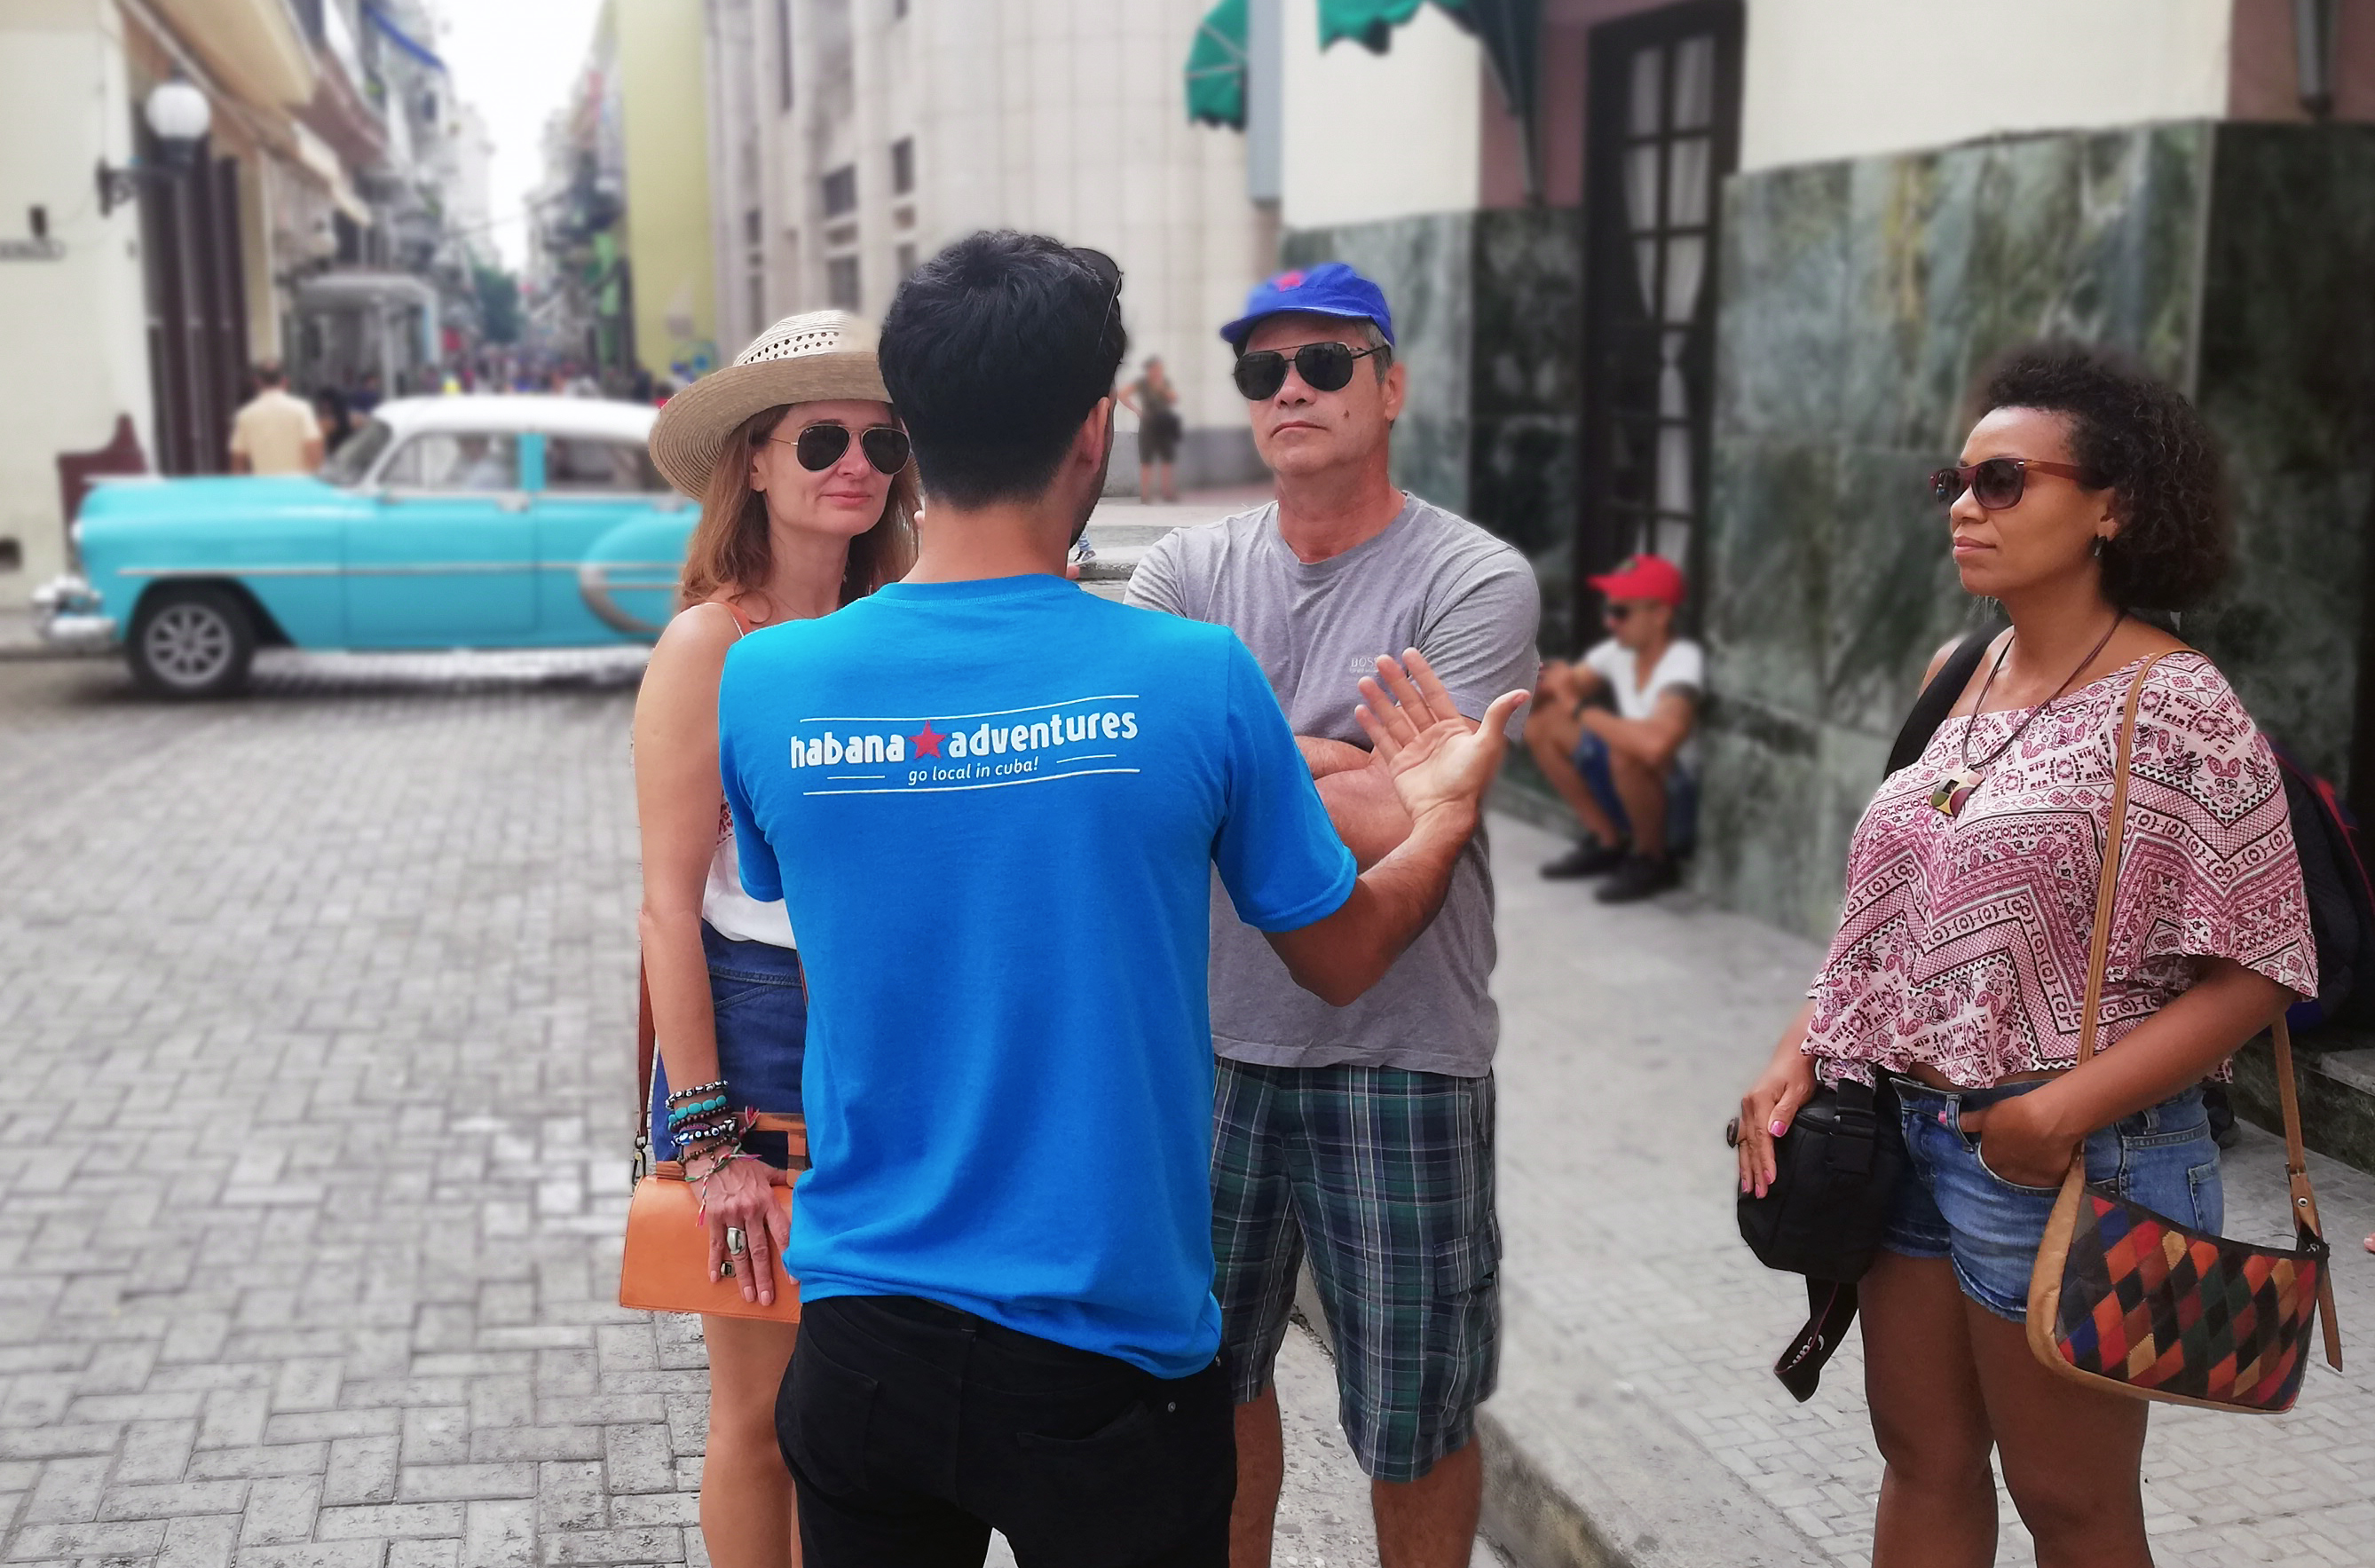 Our guides are open and honest about life is like in Cuba